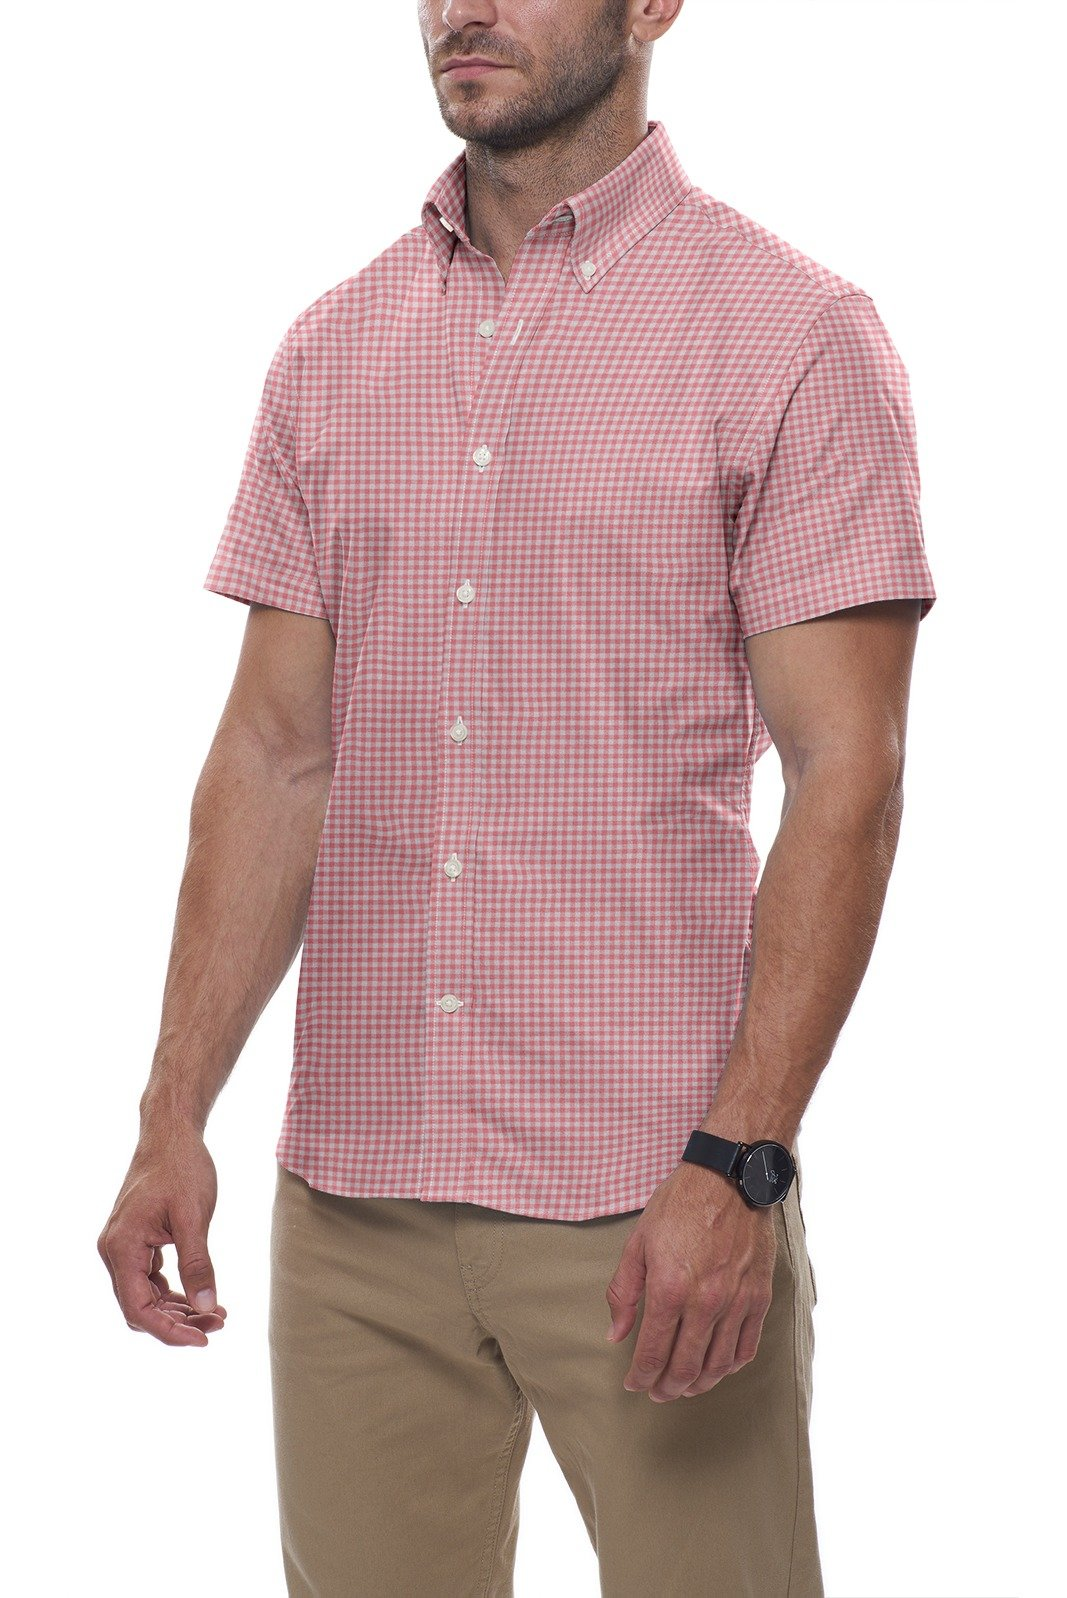 Watermelon Cotton Linen Gingham: Semi-Spread Collar, Short Sleeve